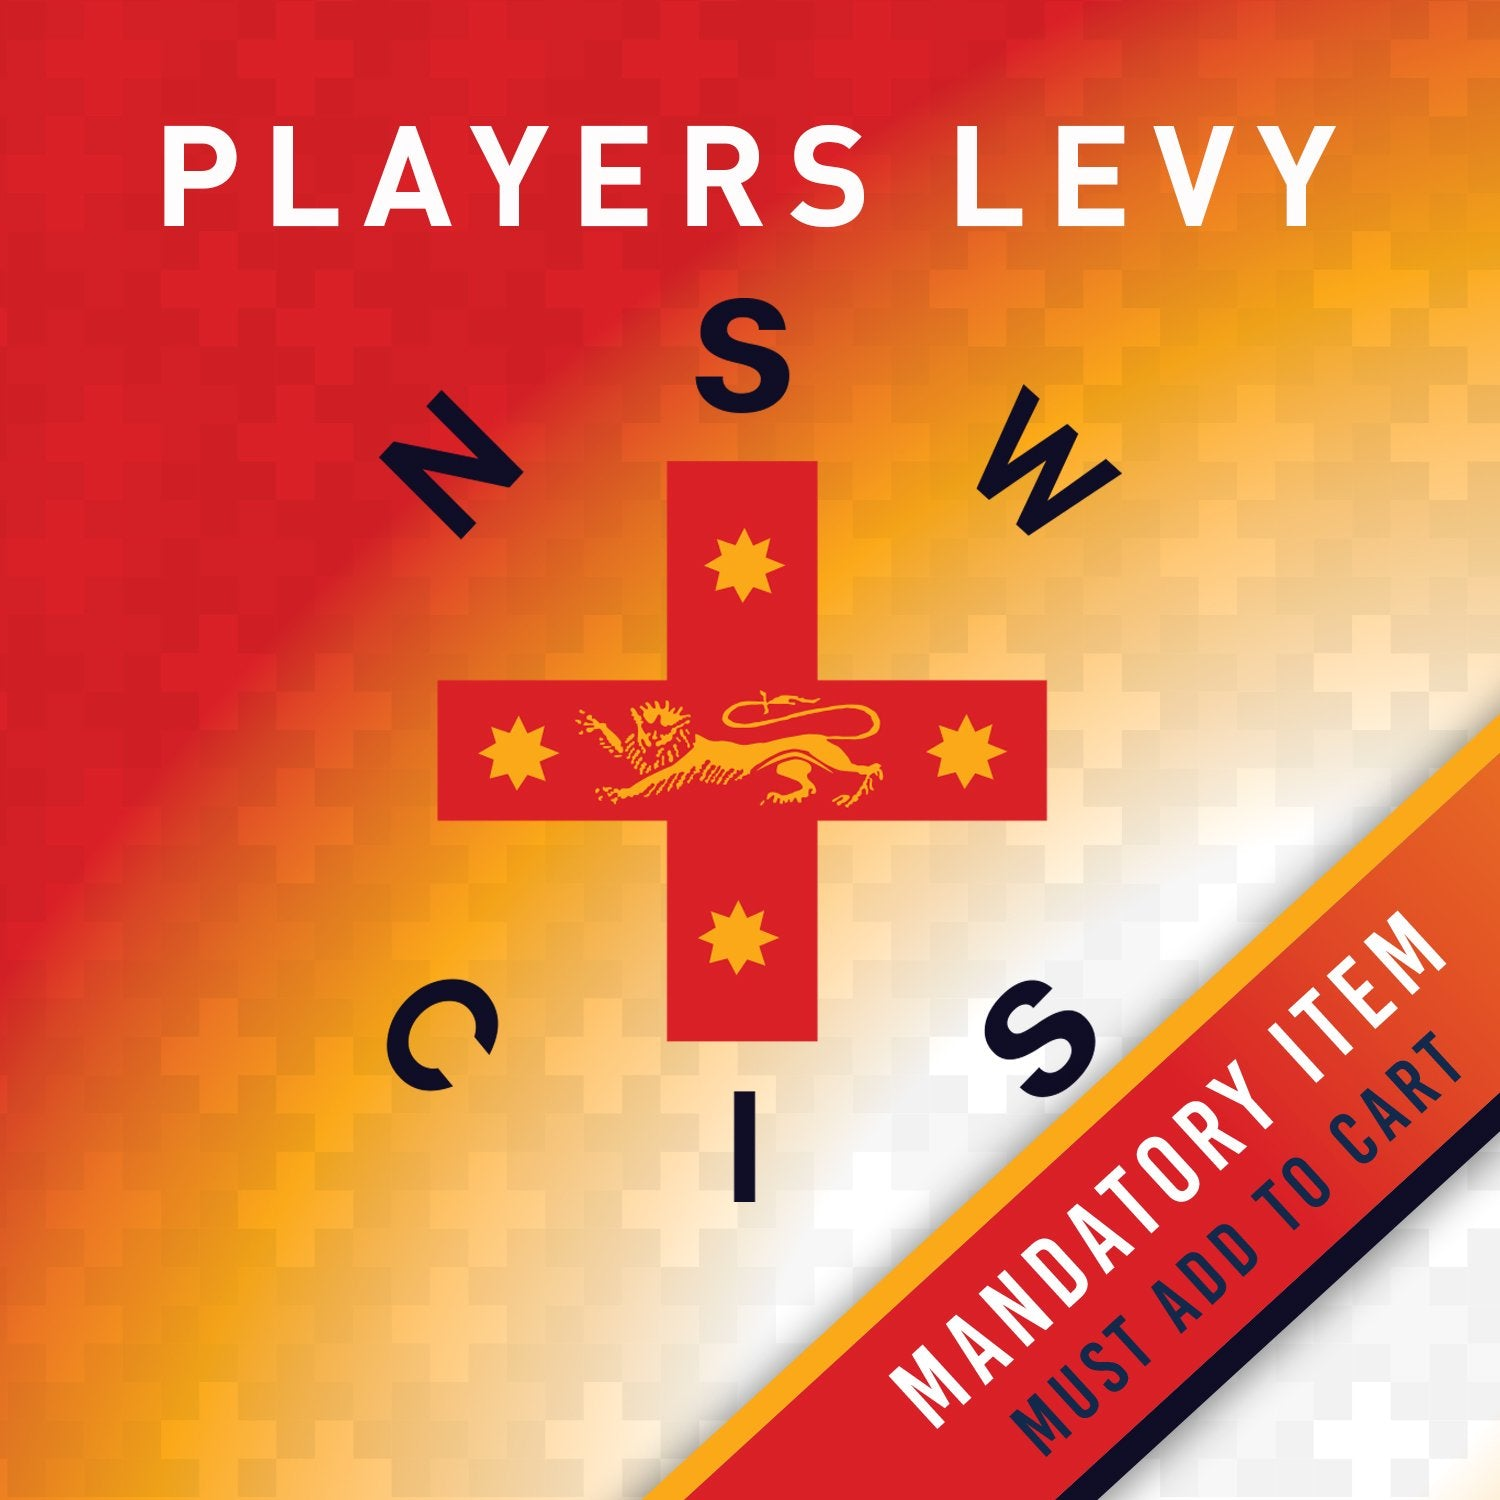 MANDATORY ITEM - PLAYERS LEVY - NSW CIS Secondary Boys Tennis